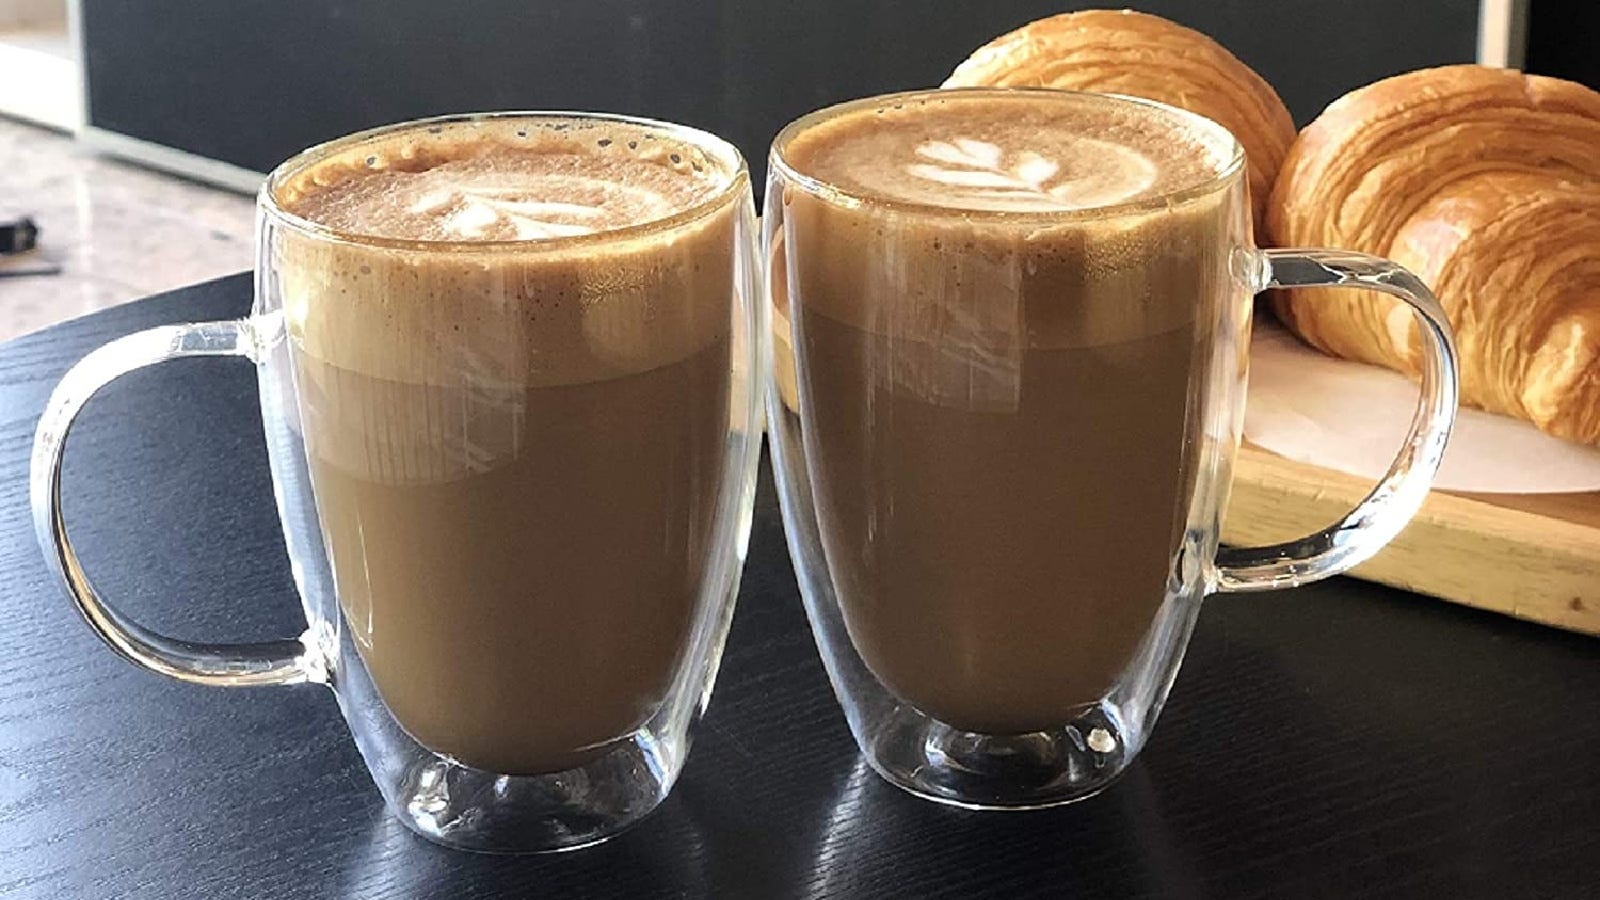 Two tall double walled latte glass mugs filled with lattes with croisants in the background.